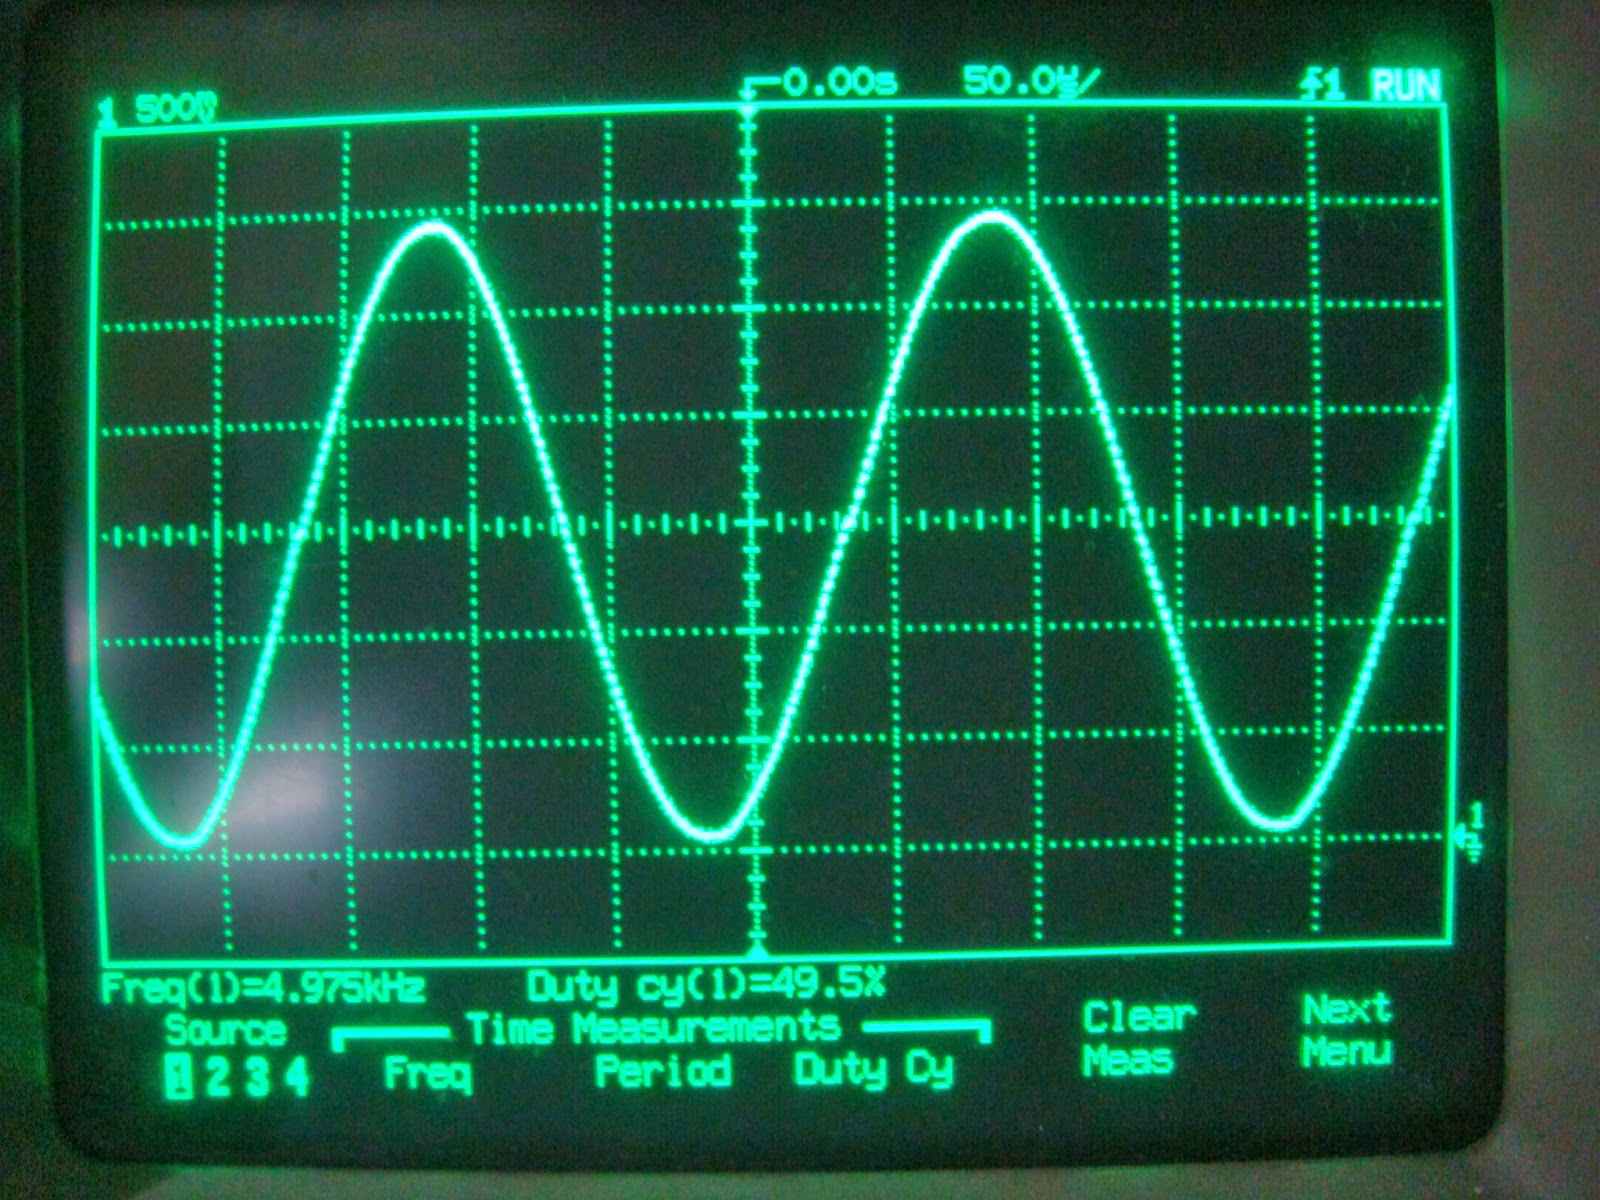 waveform generator sysnthesis dac Subtractive synthesis is often referred to as analogue synthesis because most analogue synthesizers  it actually generates a waveform or a shape.